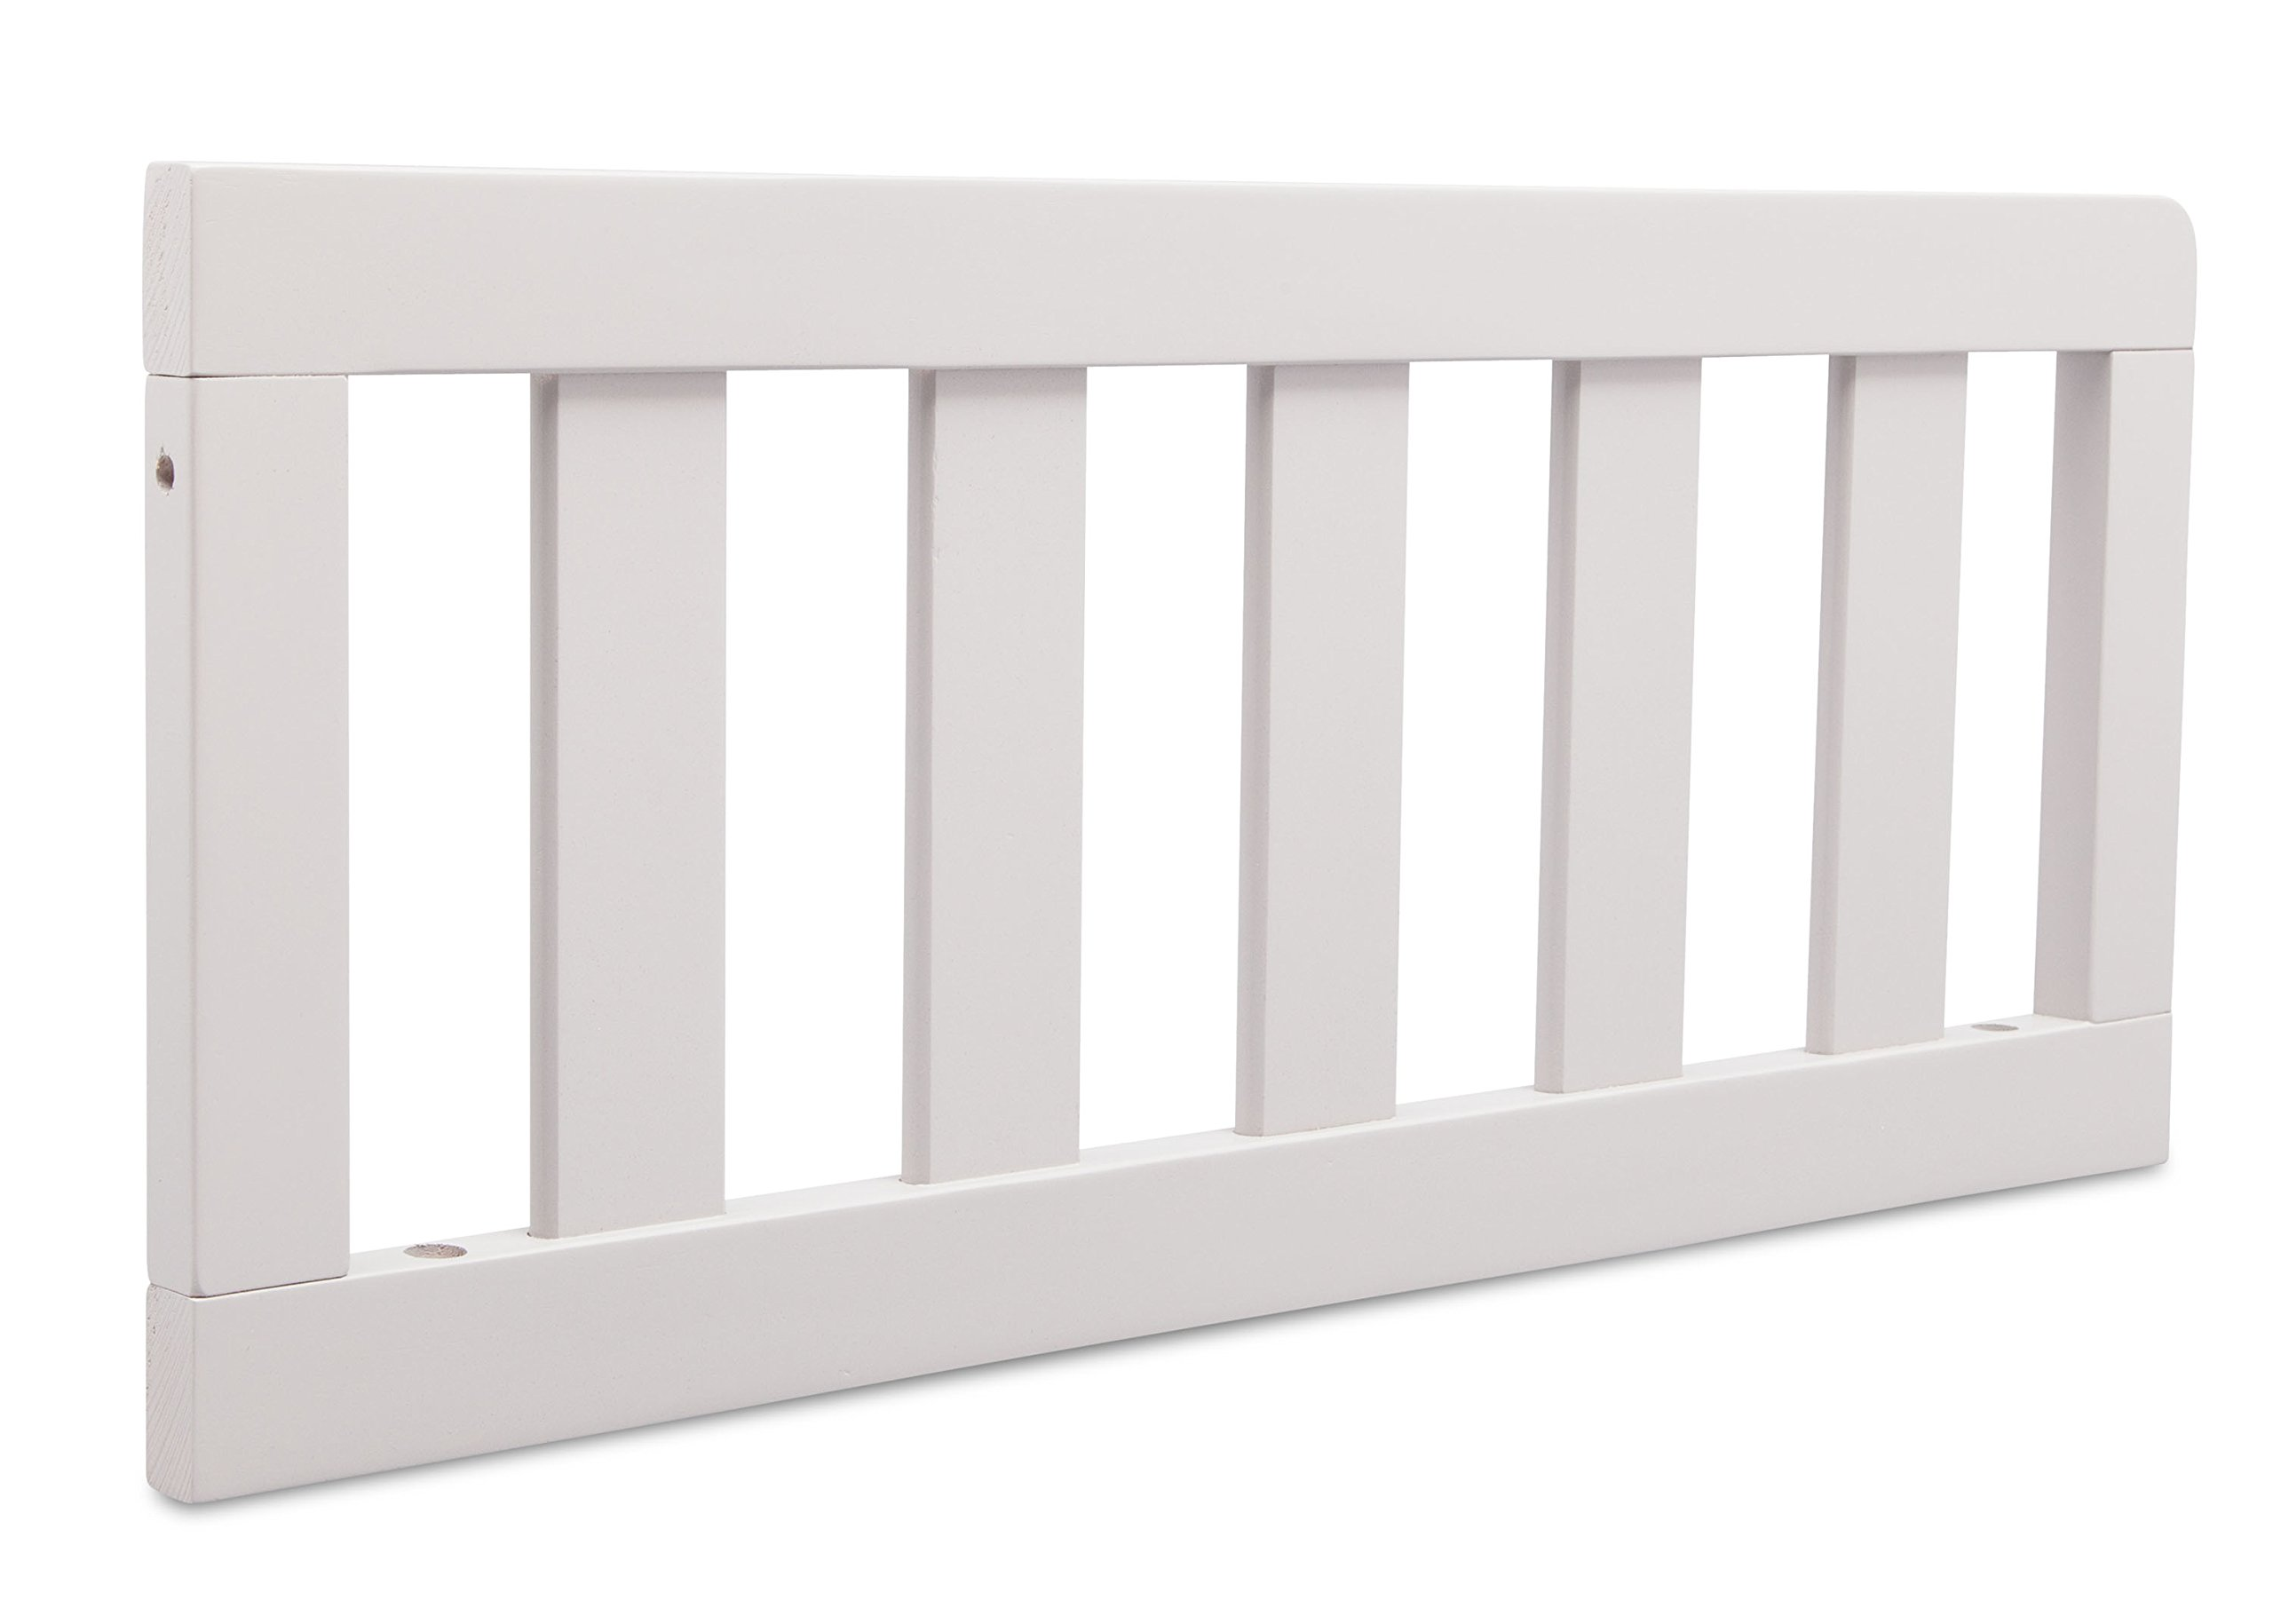 Delta Children Toddler Guardrail #0094, Bianca White by Delta Children